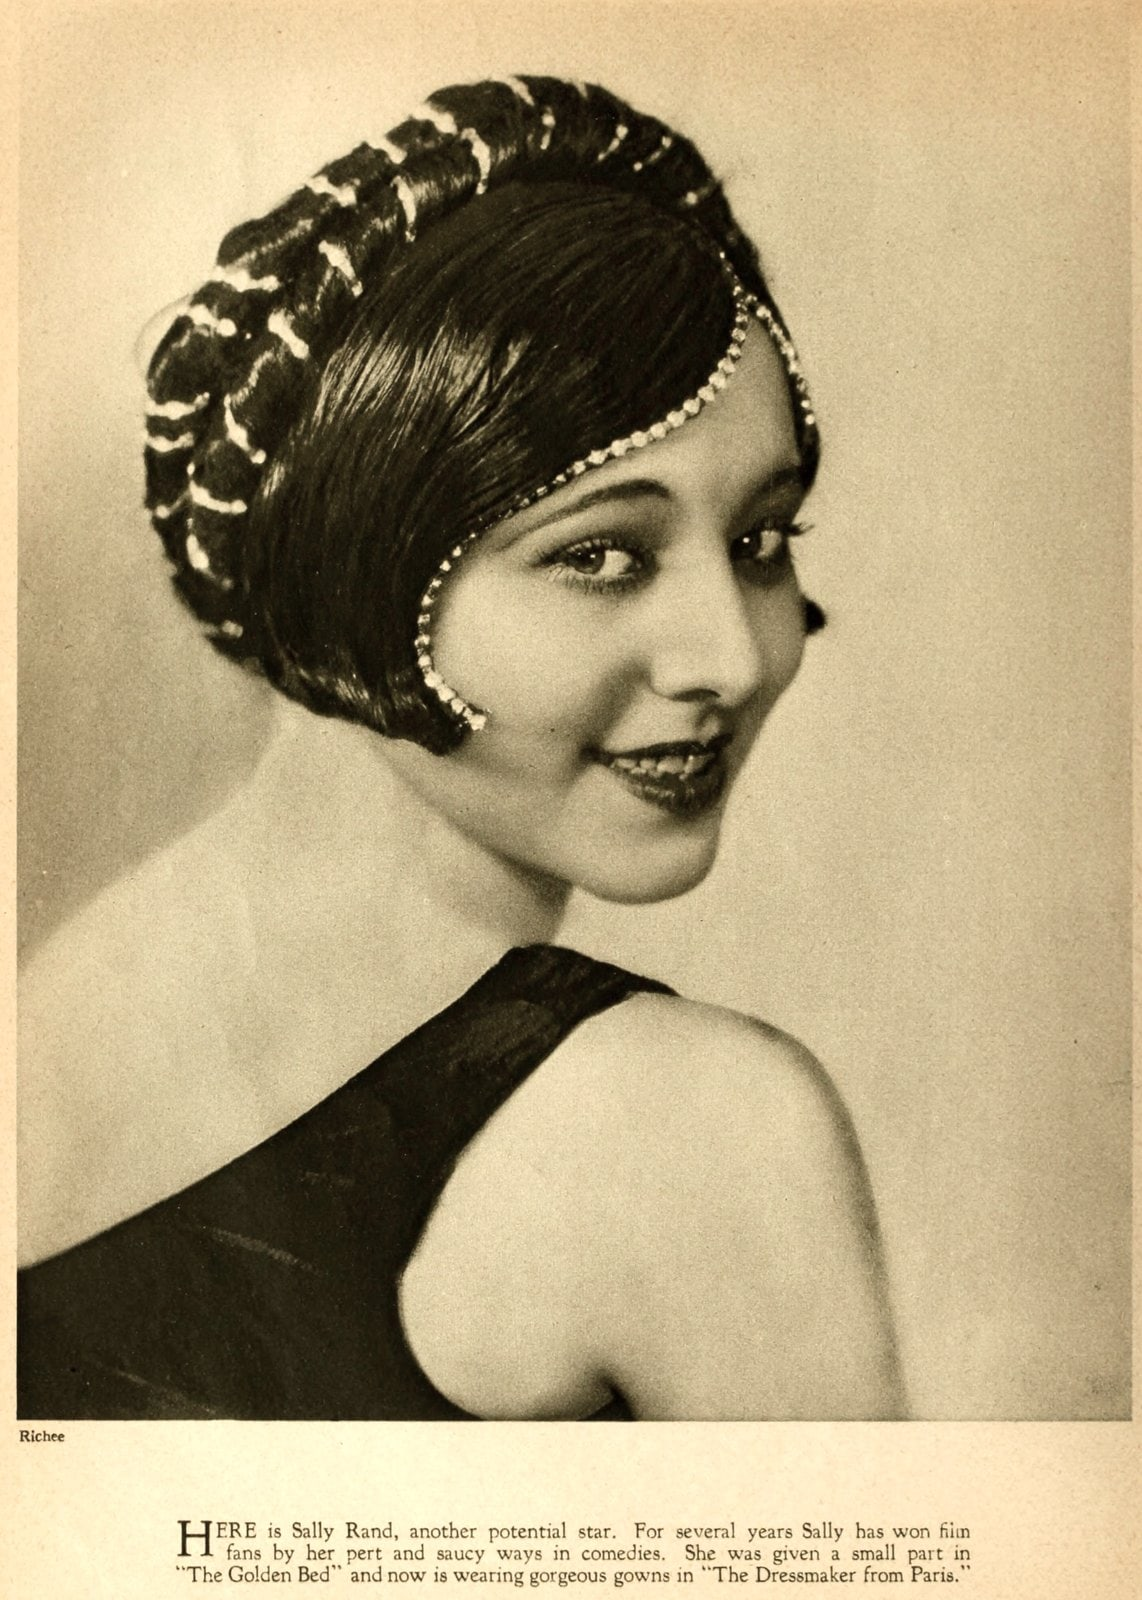 Real vintage 1920s hairstyles for women - actress Sally Rand